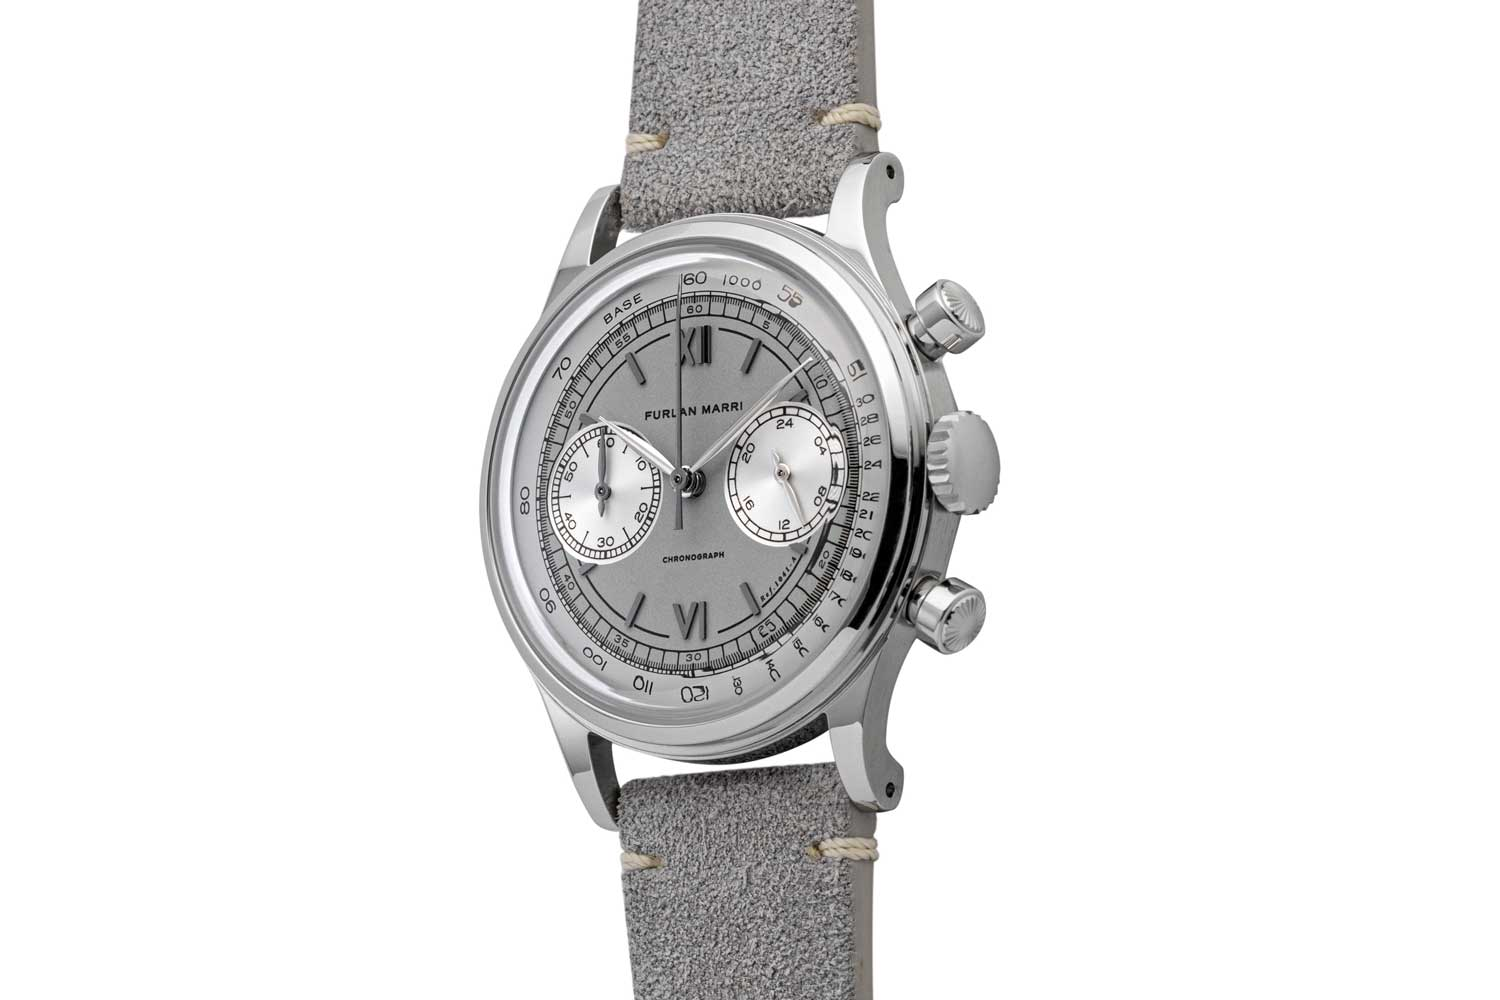 """François Borgel style crown and pushers seen on the 38mm Furlan Marri Ref. 1041-A """"Mr. Grey"""" (©Revolution)"""